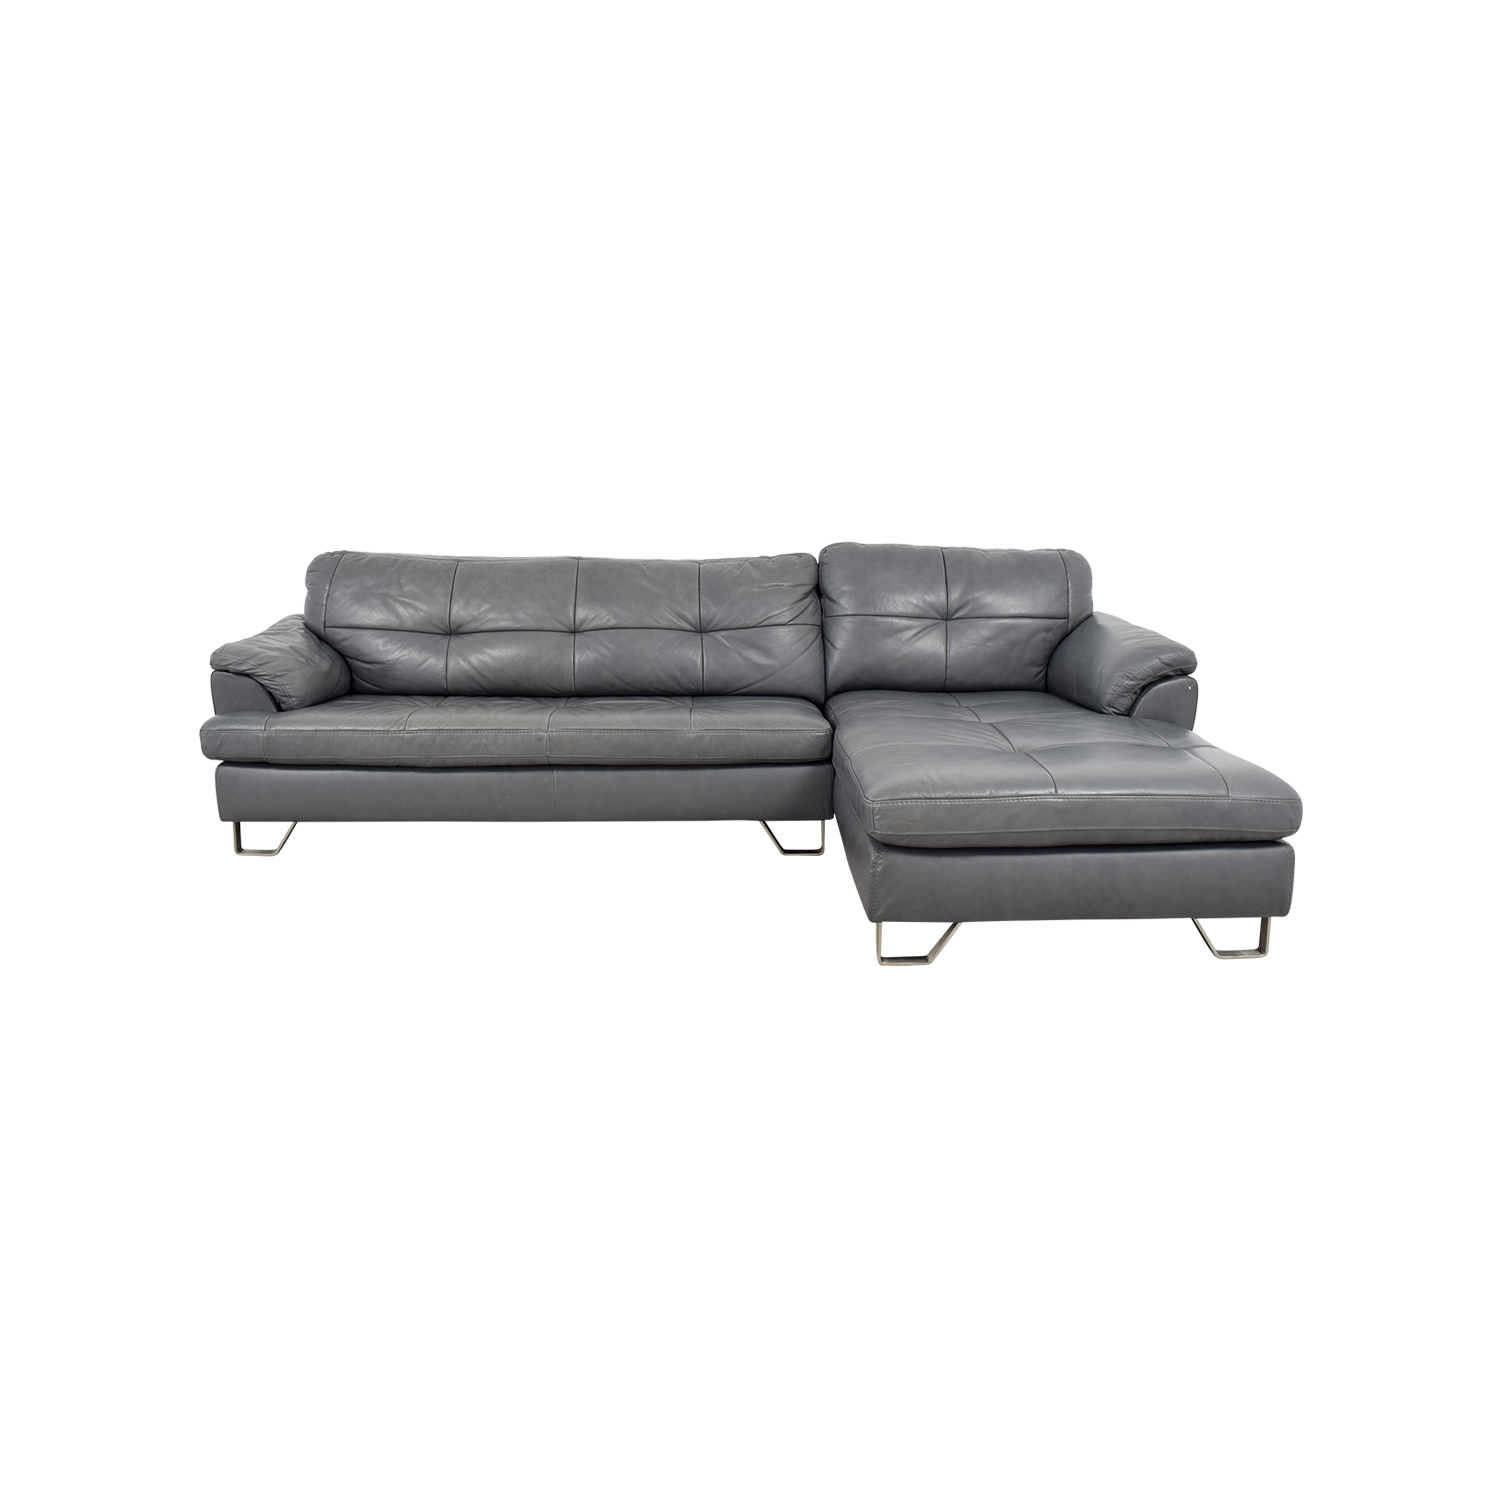 Ashley Furniture Ashley Furniture Gray Tufted Sectional Sofa discount